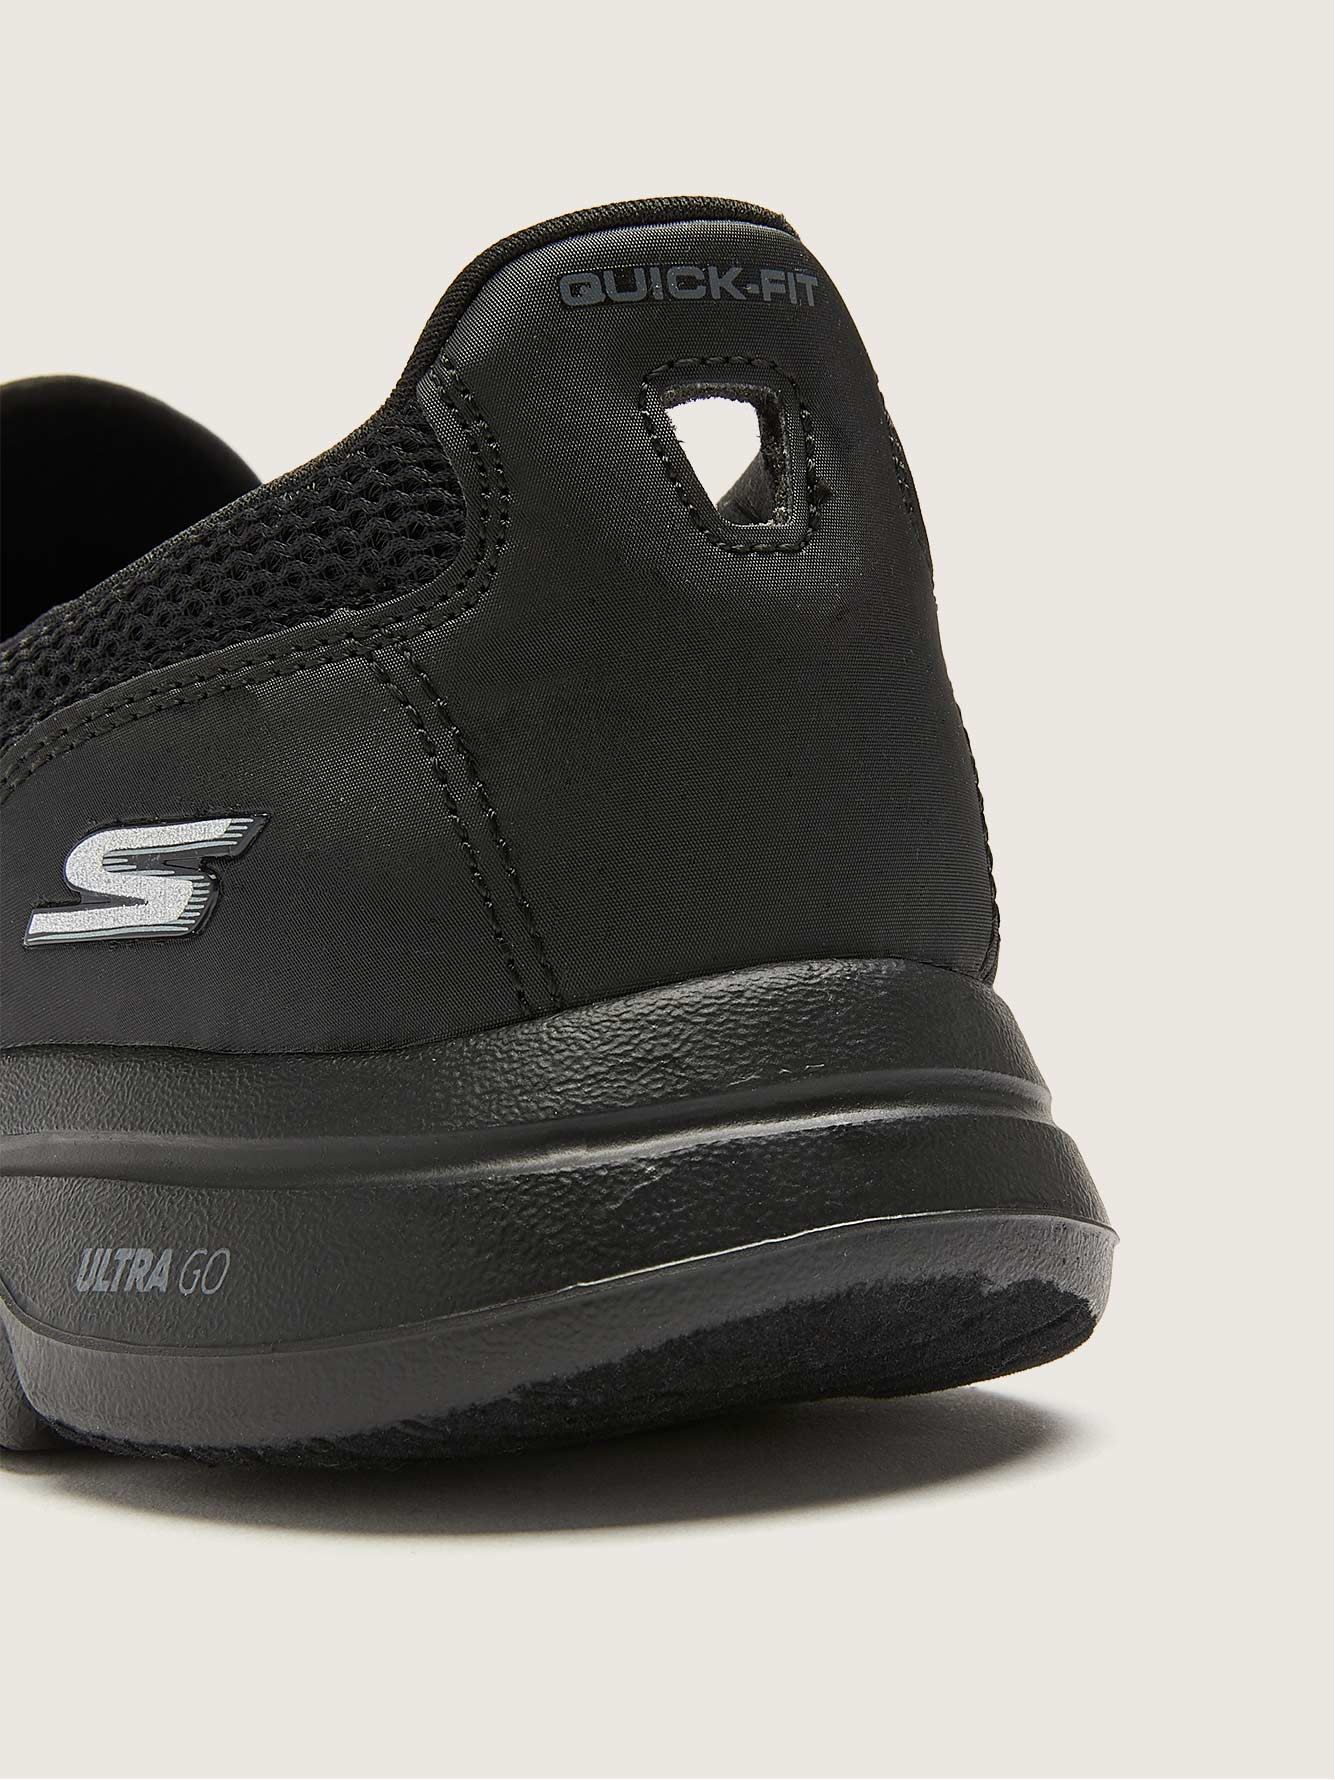 Wide GOWALK Slip-On Sneakers - Skechers